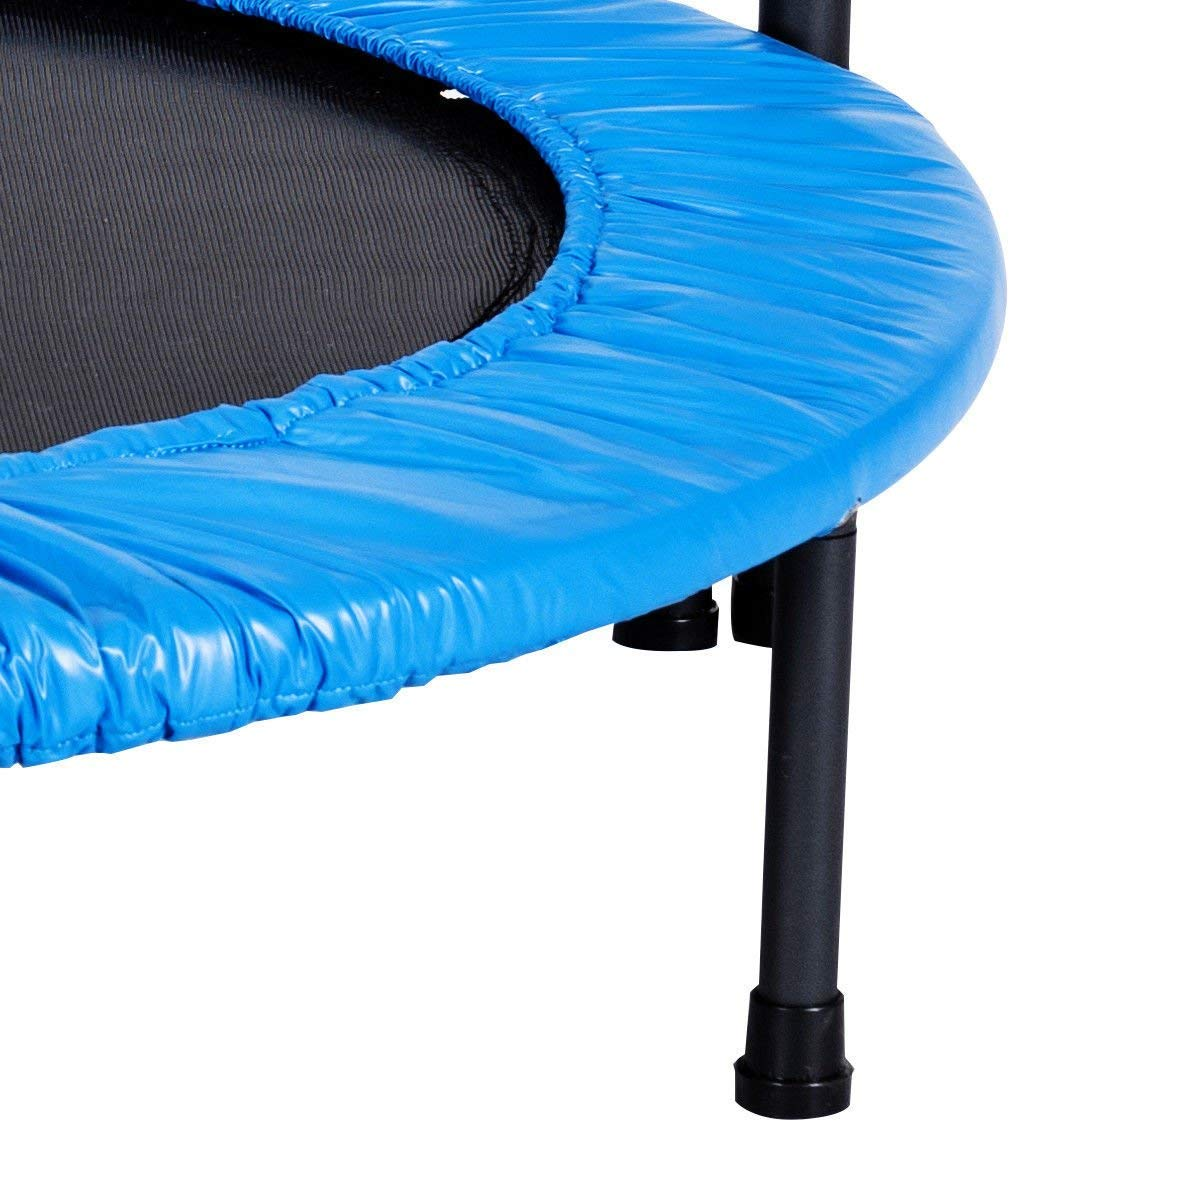 GYMAX Mini Trampoline, Rebounder Exercise Trampoline for Outdoor Indoor Fitness Workout, with Handle Rail by GYMAX (Image #6)